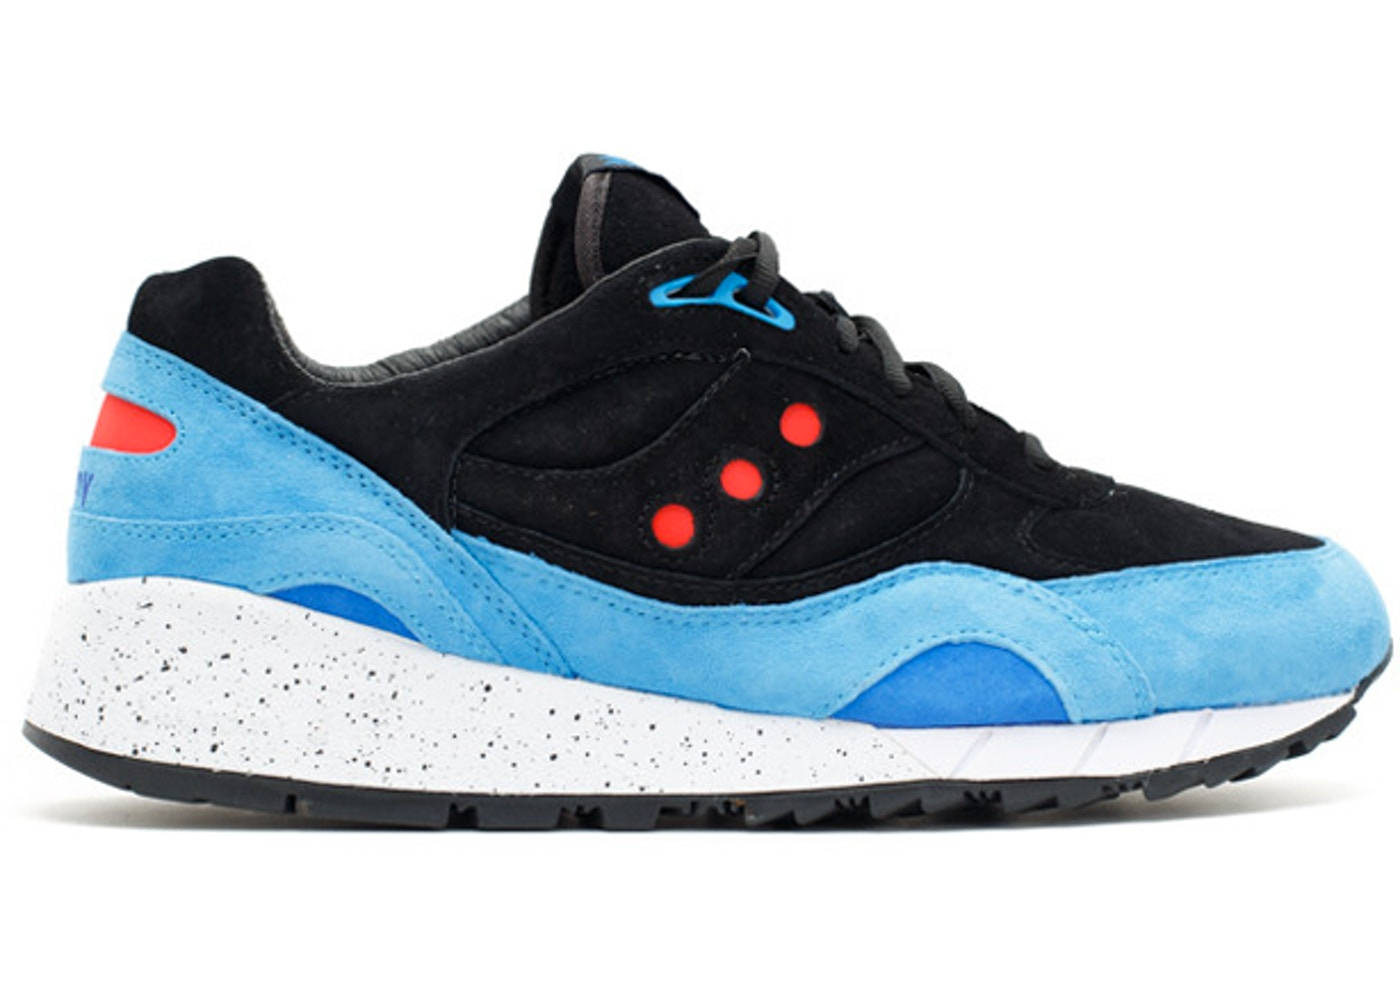 3556f9cf0865 Saucony Shadow 6000 Footpatrol Only In Soho - 70115-1